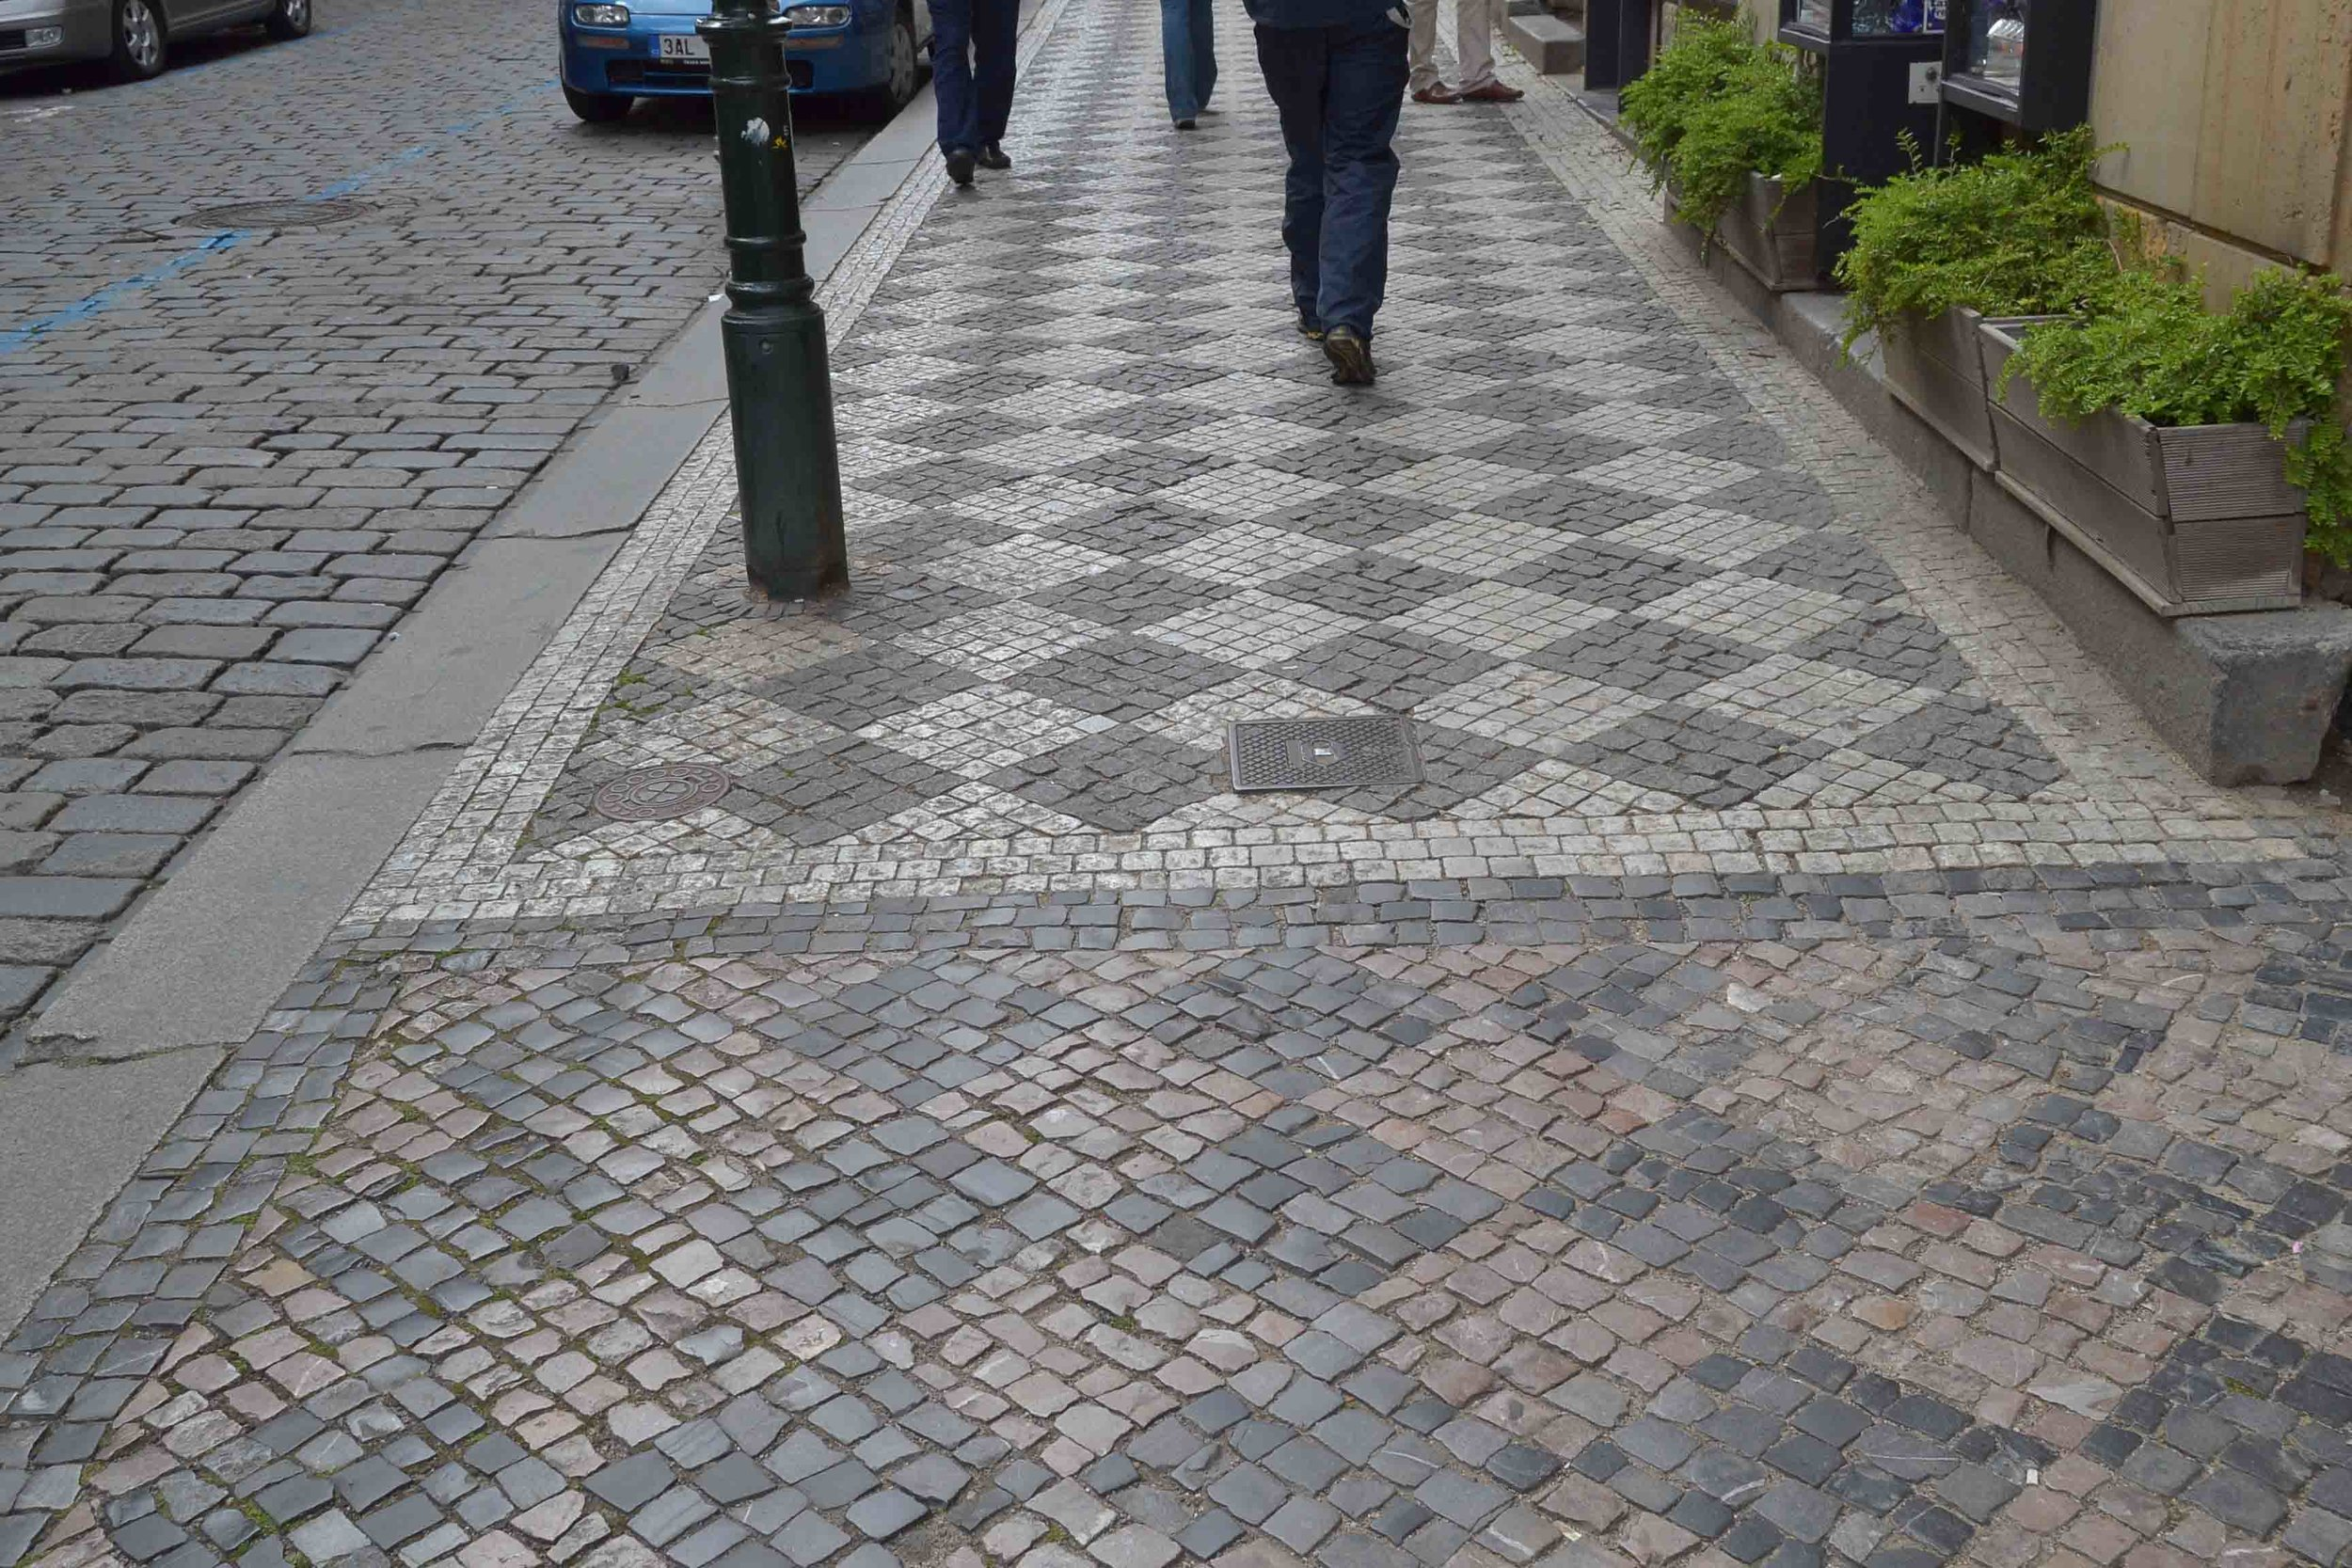 Variety of colours and textures in the sidewalk paving in Prague